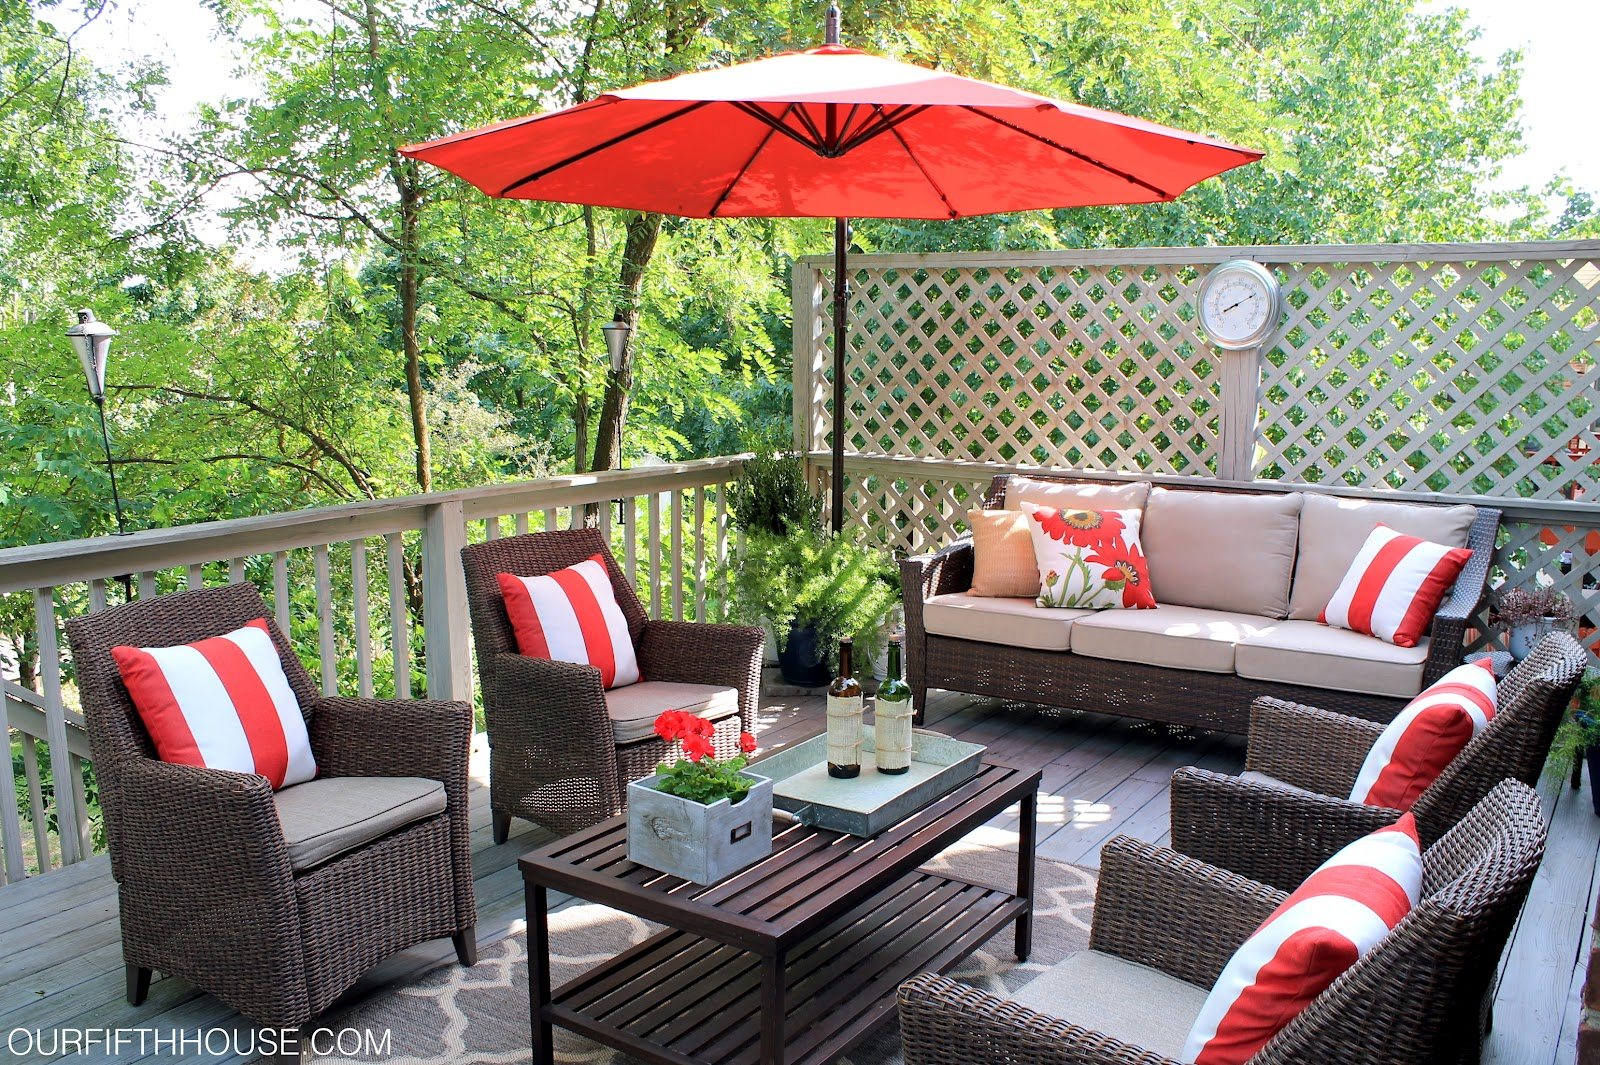 Outdoor living deck updates our fifth house for Outdoor living patio furniture